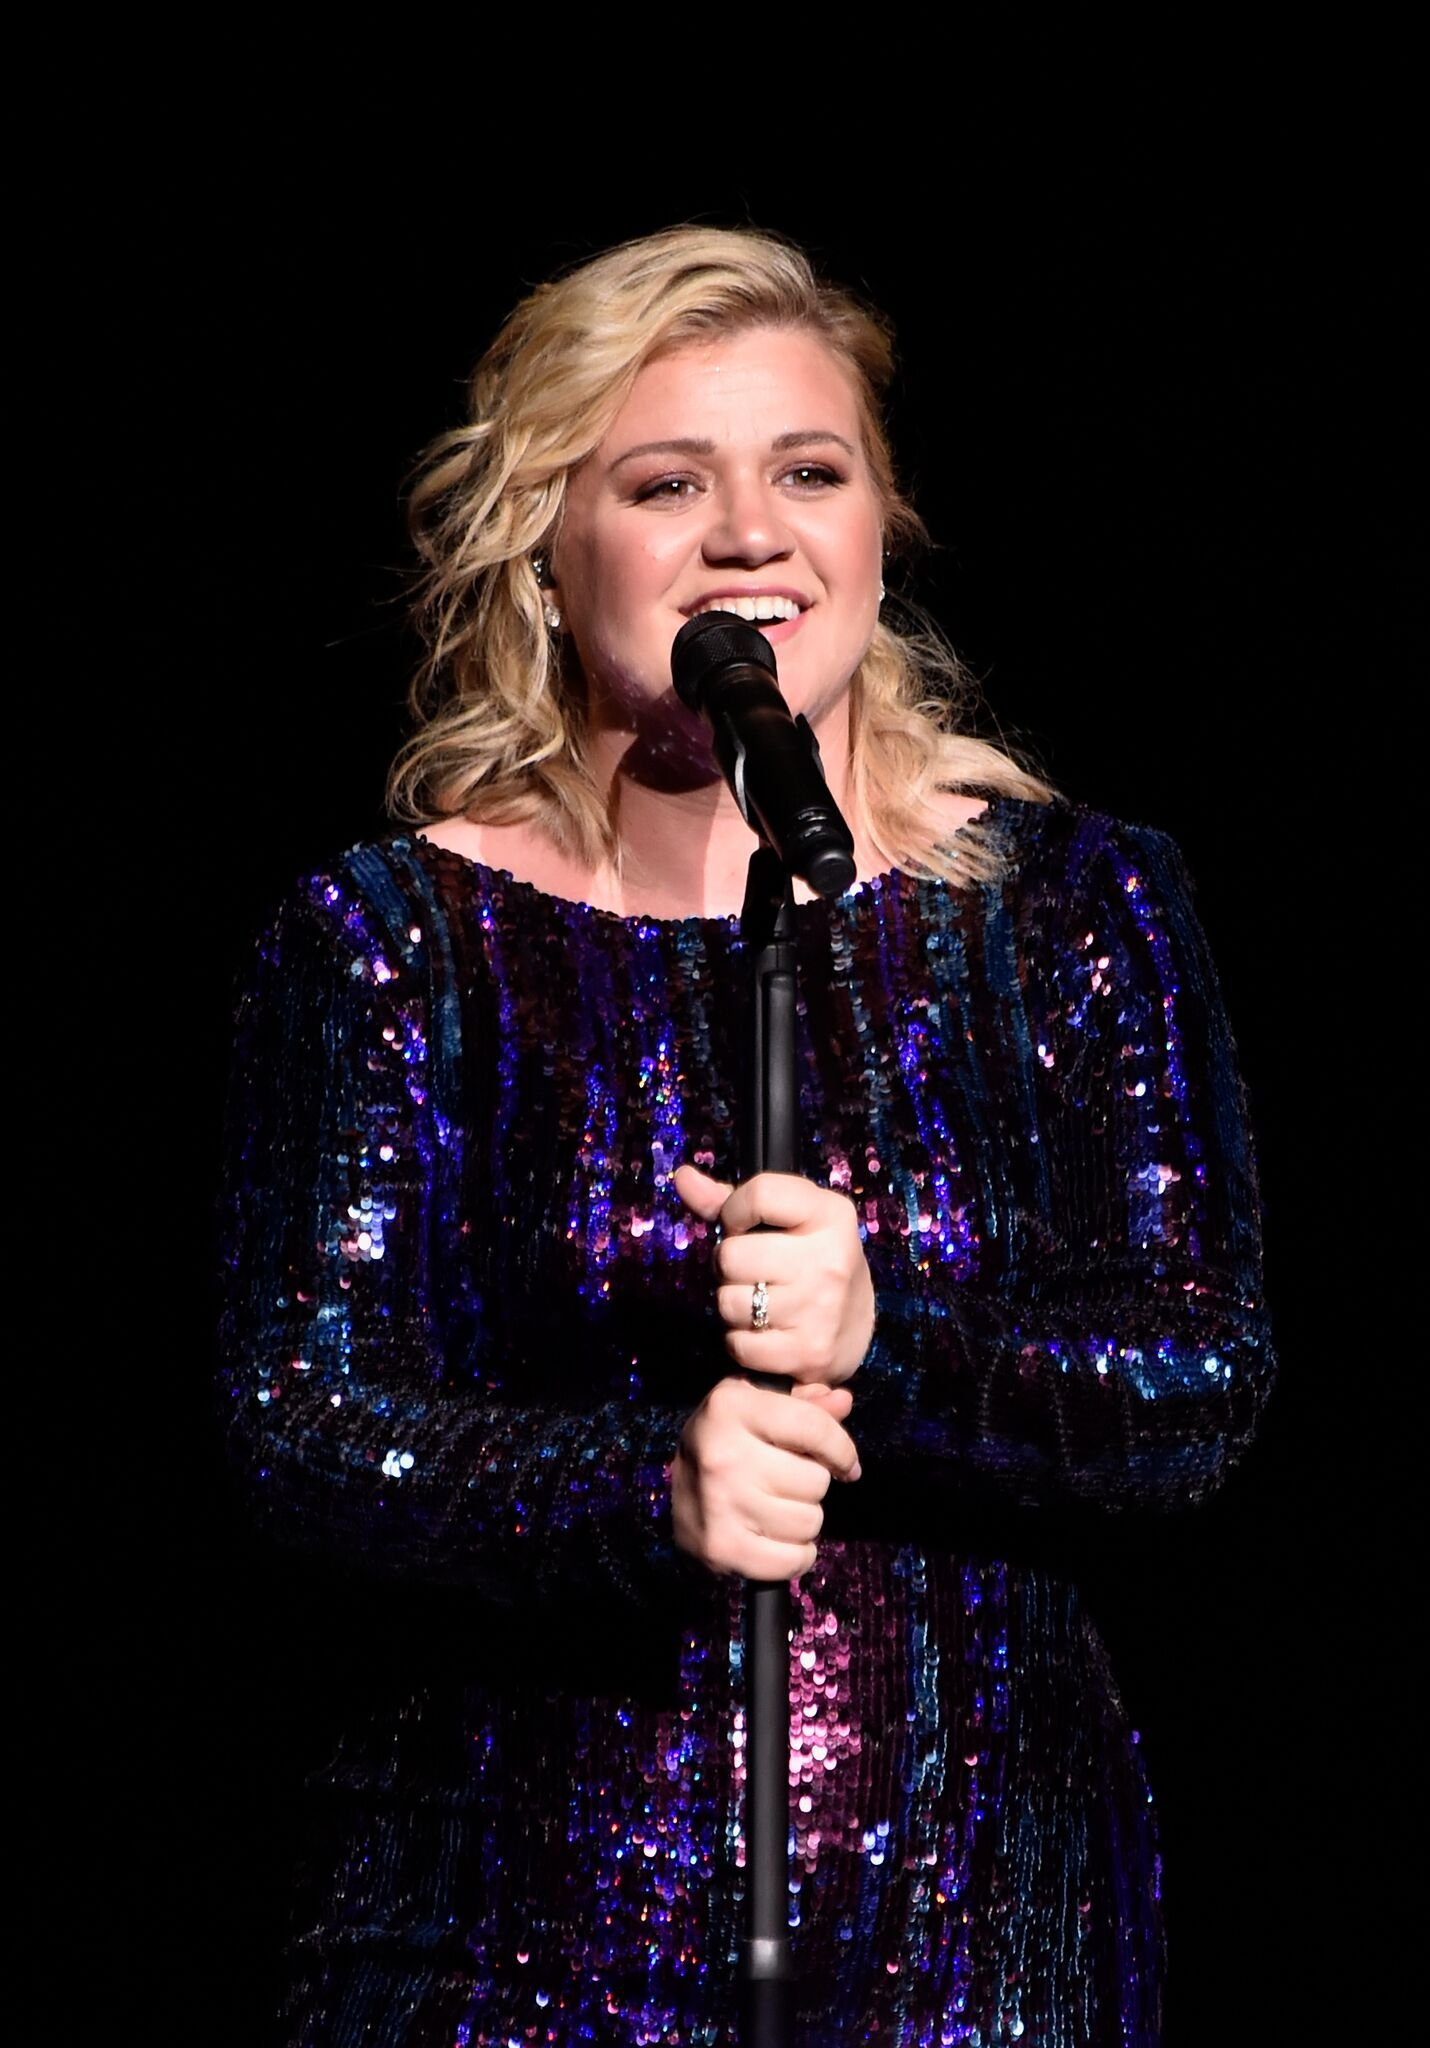 Kelly Clarkson performs at the Sands Cares INSPIRE 2019 charity concert benefiting local nonprofit organizations | Getty Images